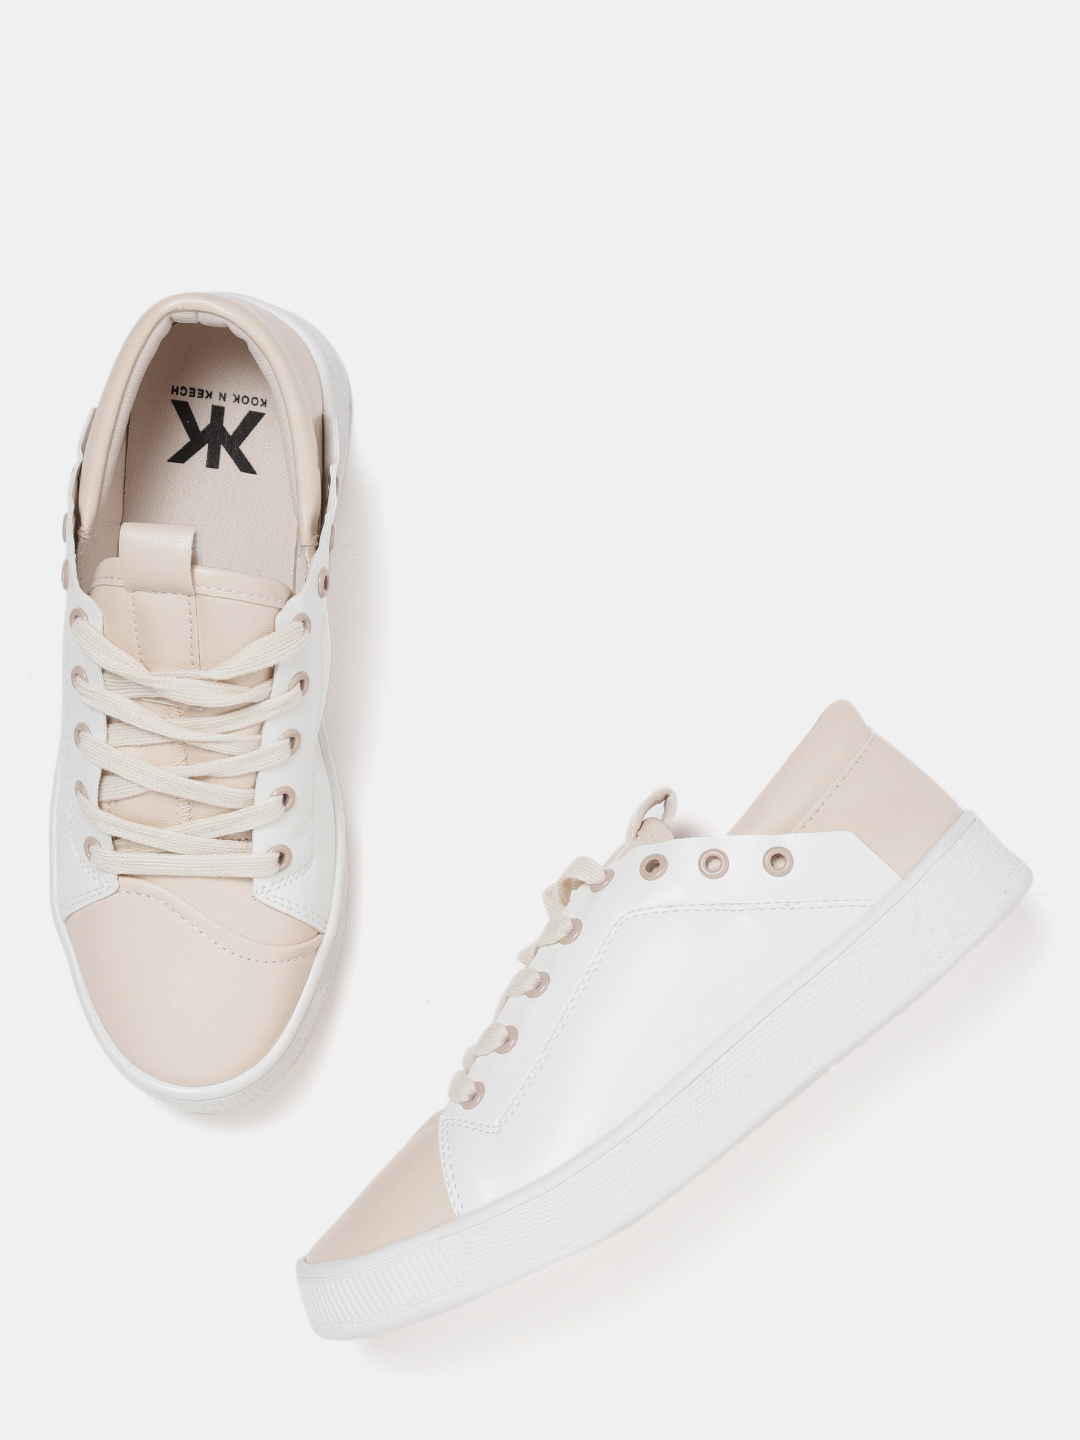 Kook N Keech Women White & Beige Colourblocked Sneakers Price in India